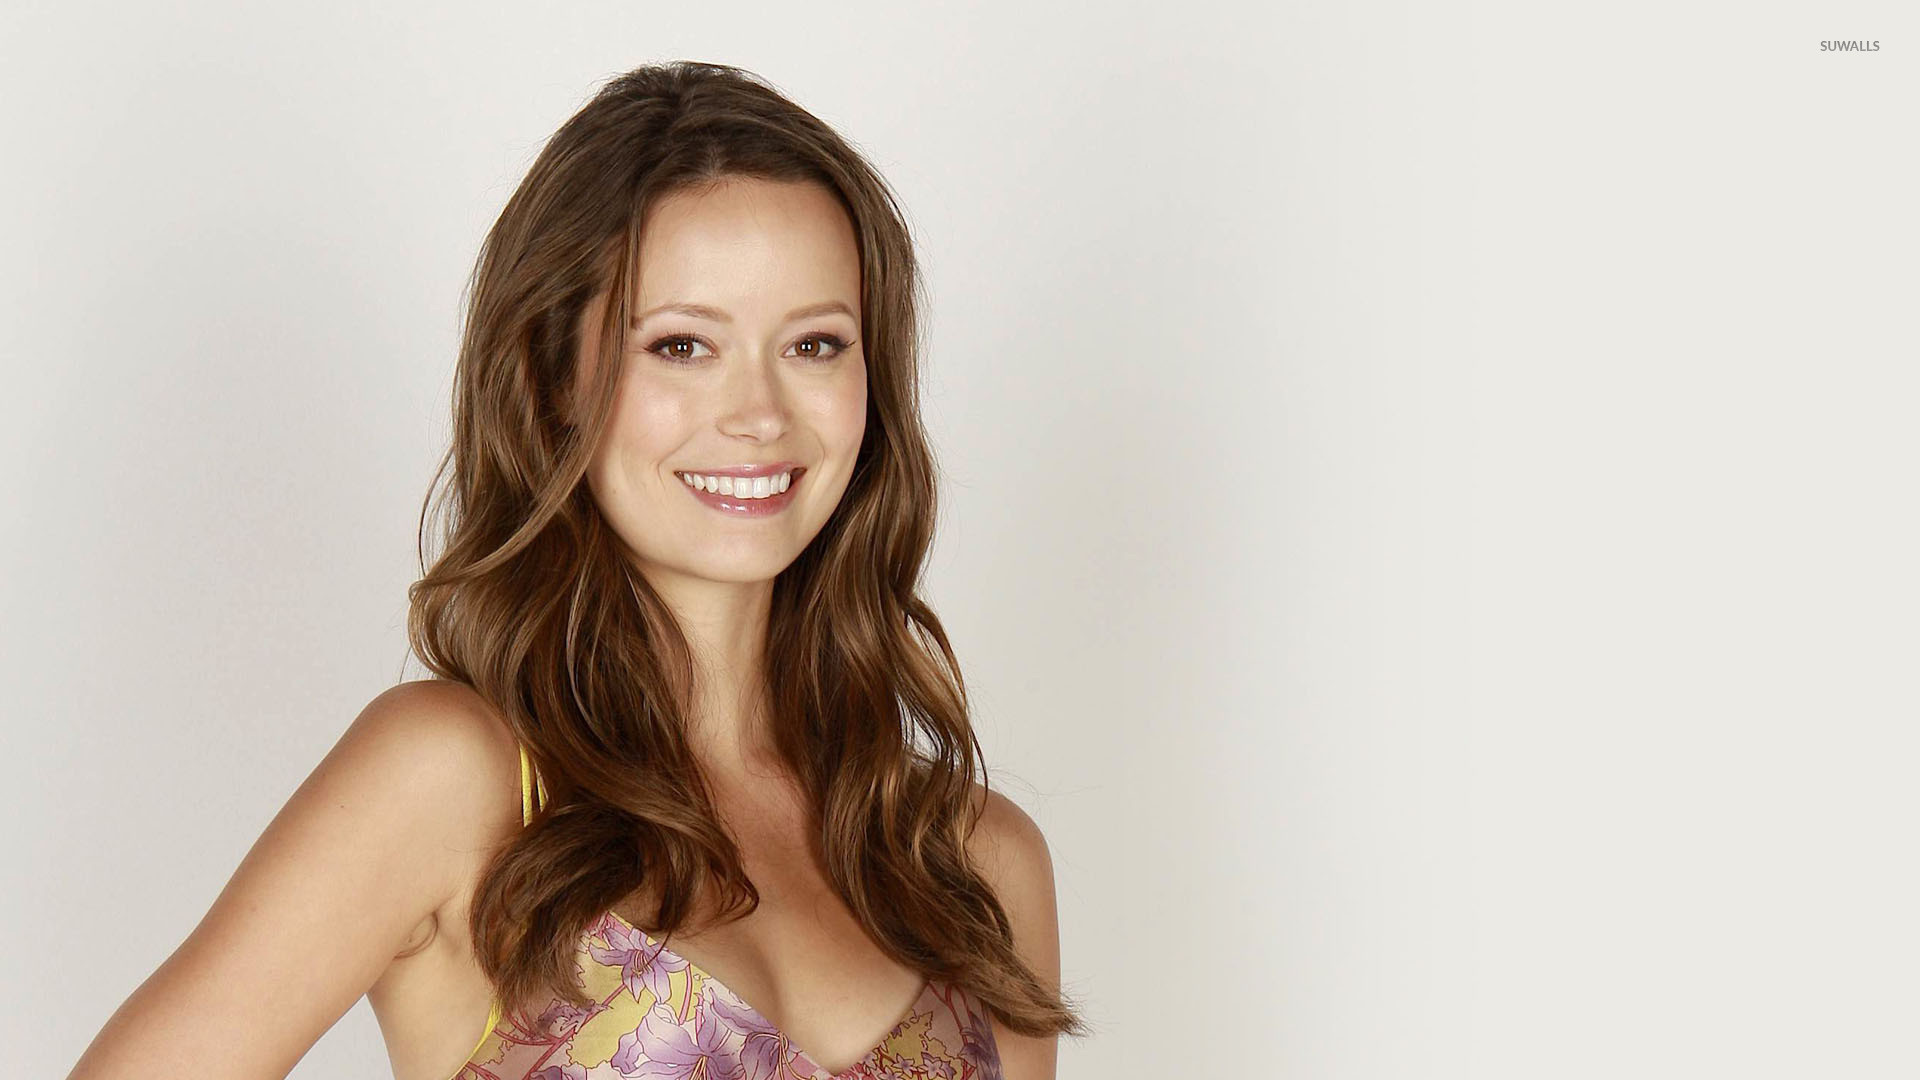 1920x1080 Summer Glau with a beautiful smile wallpaper